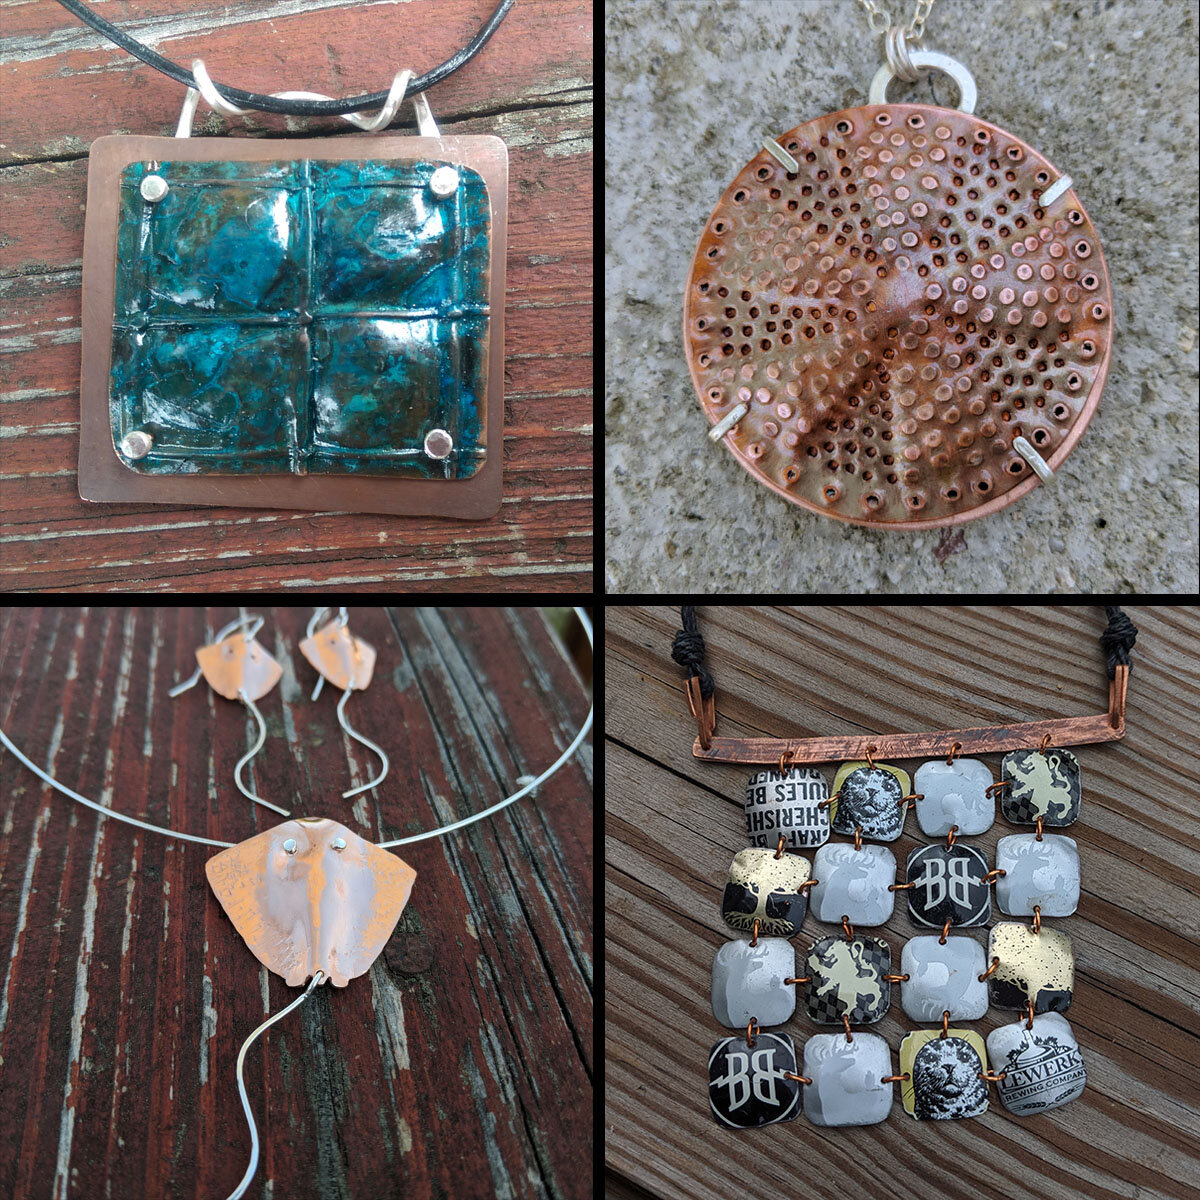 """Challenge pieces, clockwise from top left: """"Blue"""" (for """"Blue"""" show), copper side of """"Diatoms"""" (for Botanical show), bottle cap necklace, (for """"Recycled""""), and """"Sting Rays"""" (for """"Animal Kingdom"""" show)."""